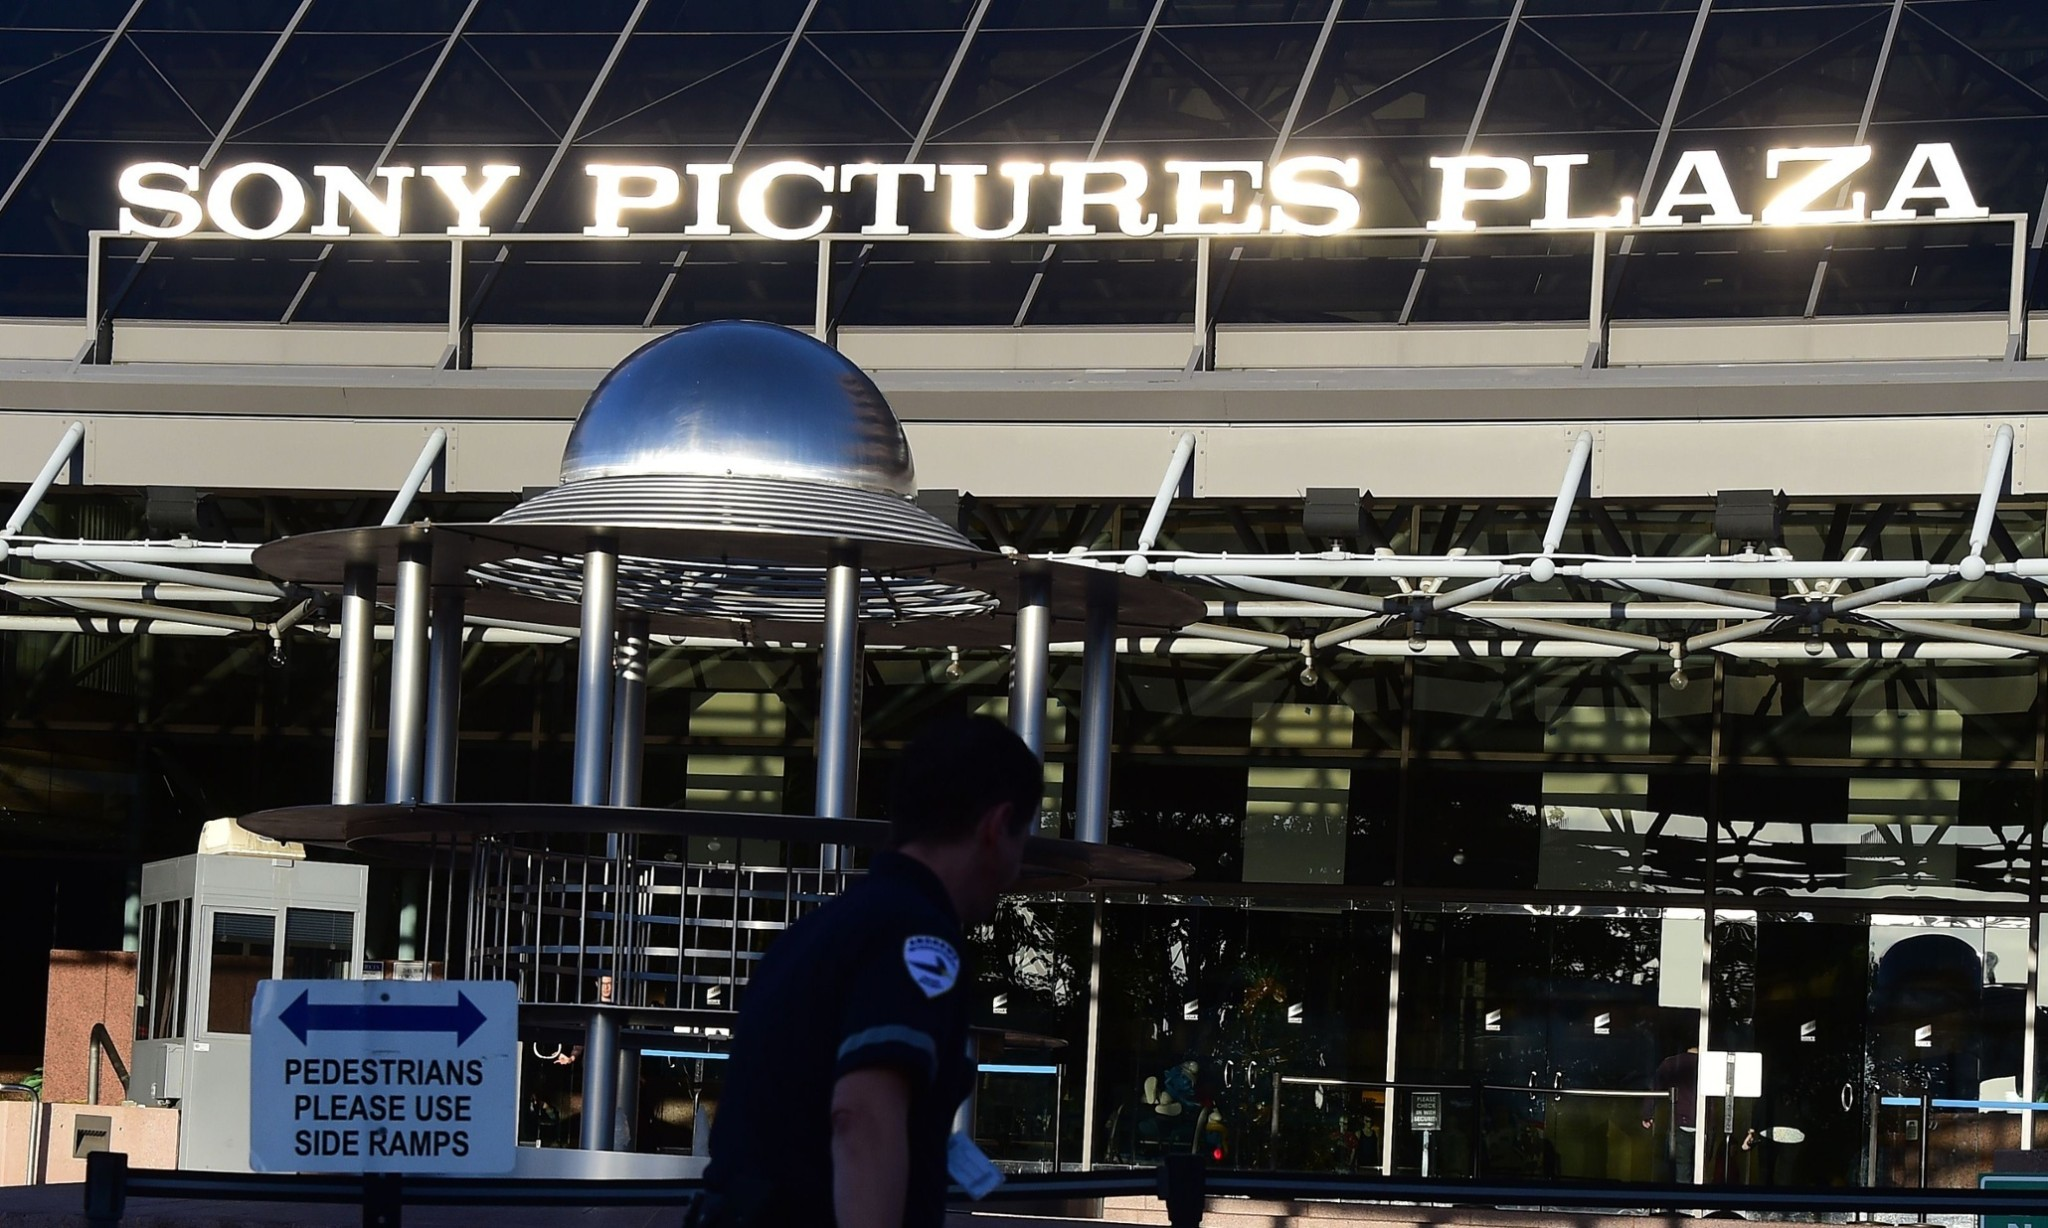 FBI doubts North Korea link to Sony Pictures hack